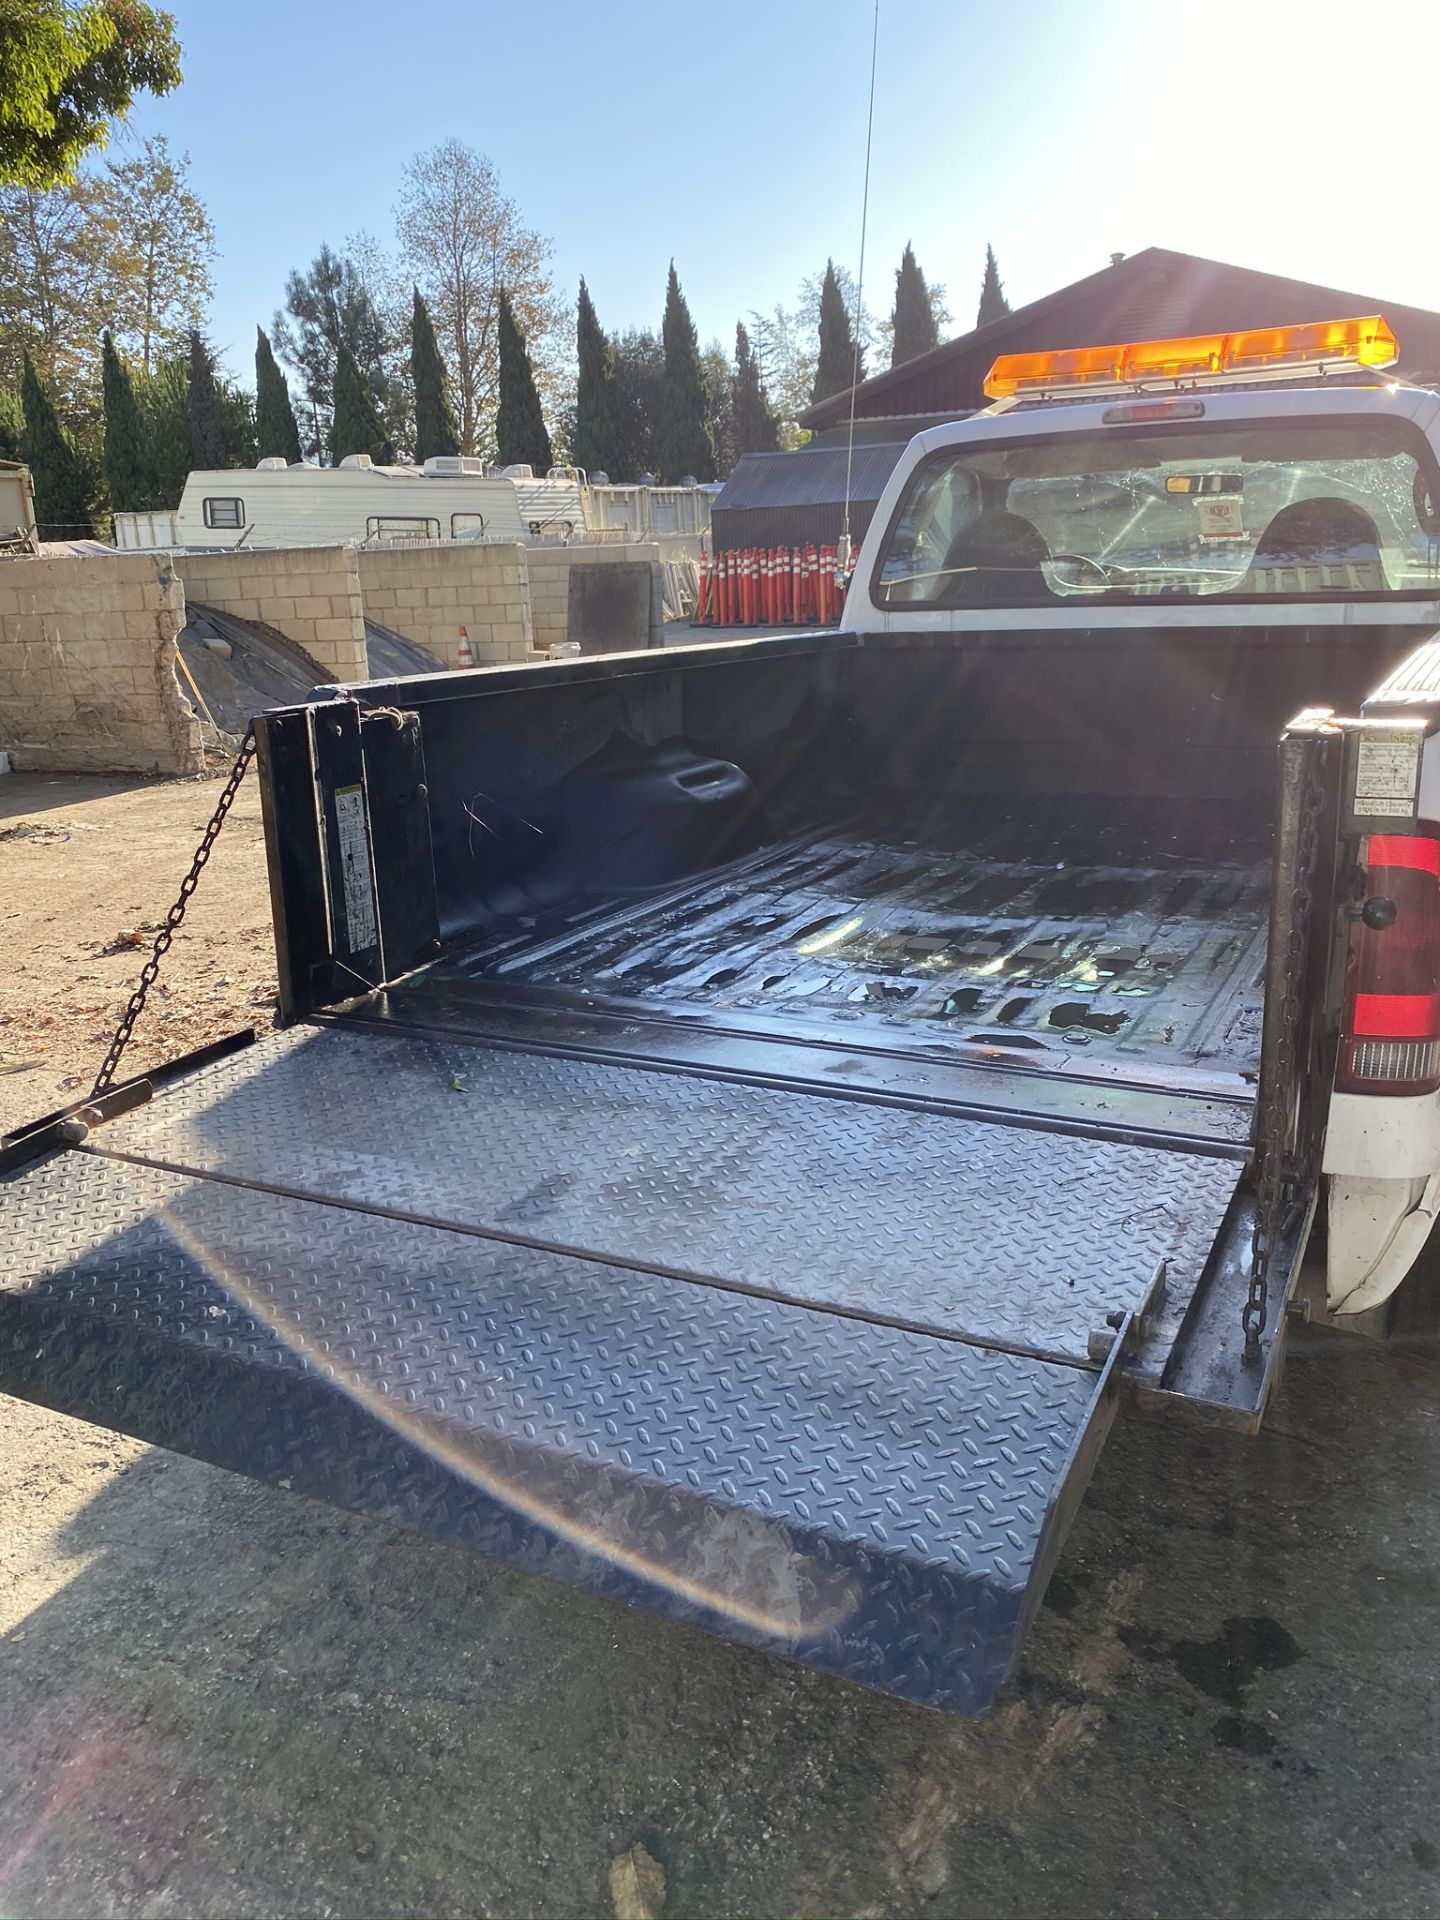 2007 FORD F-250, XL SUPER DUTY PICK UP TRUCK - Image 4 of 12